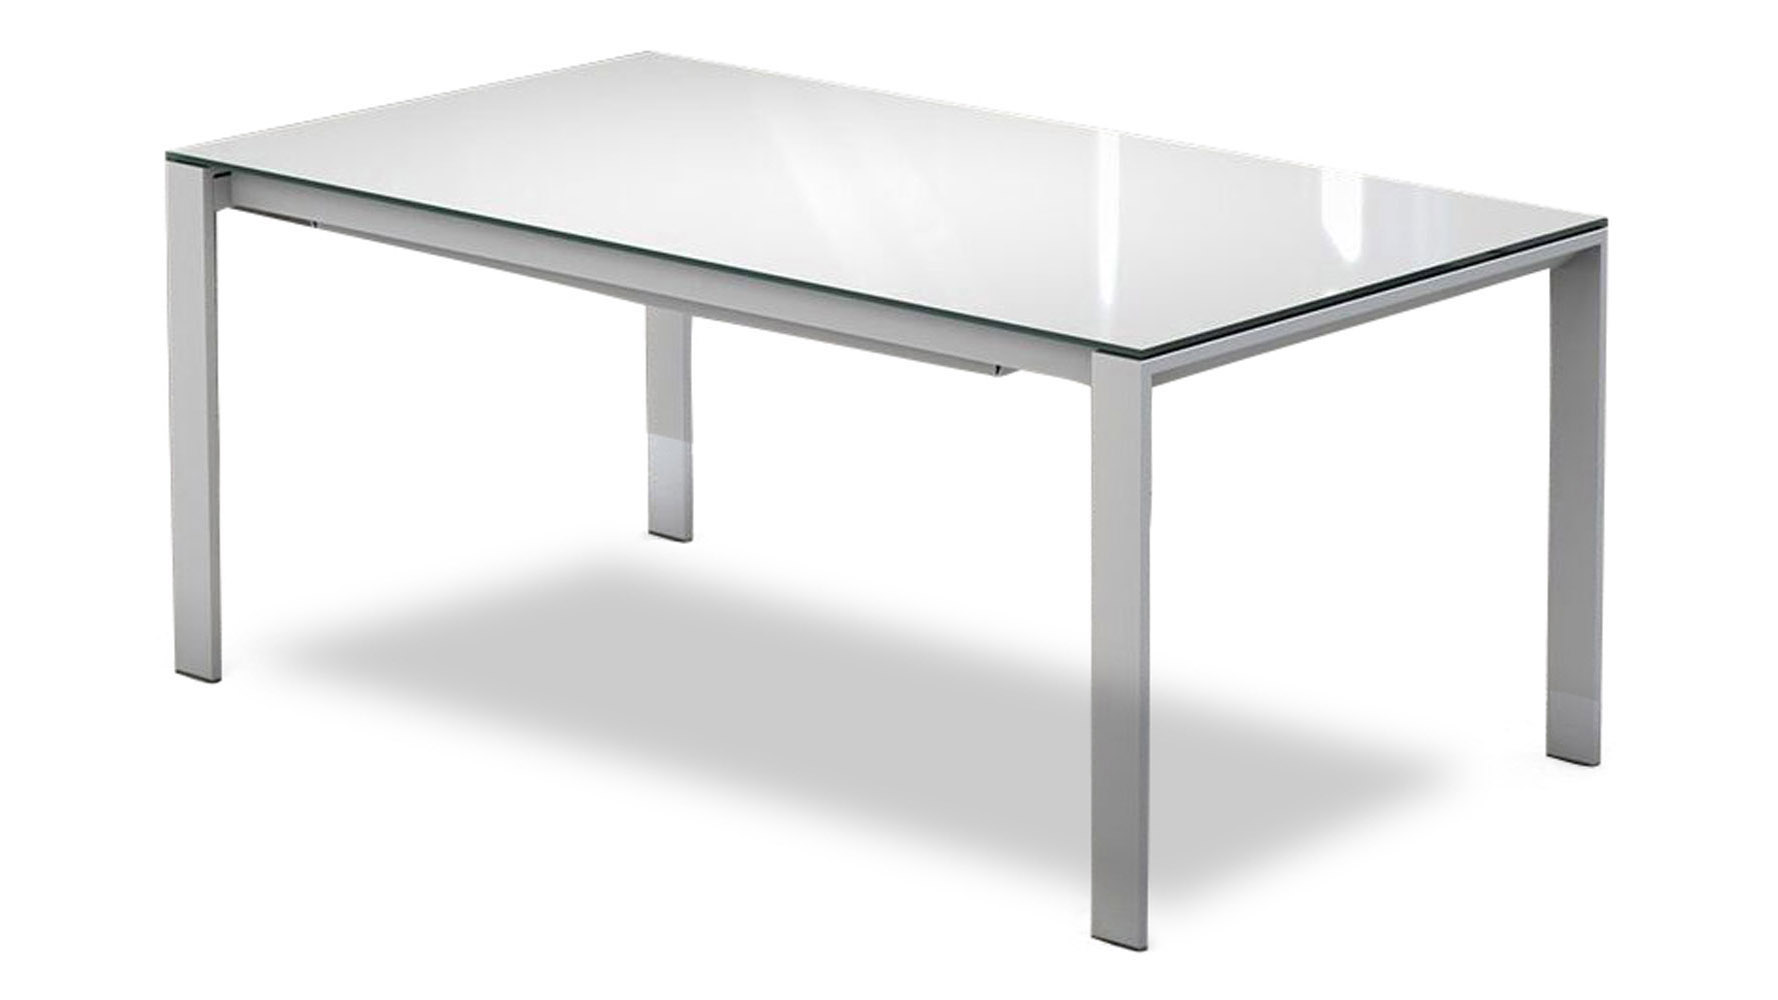 Natchez Extension Dining Table